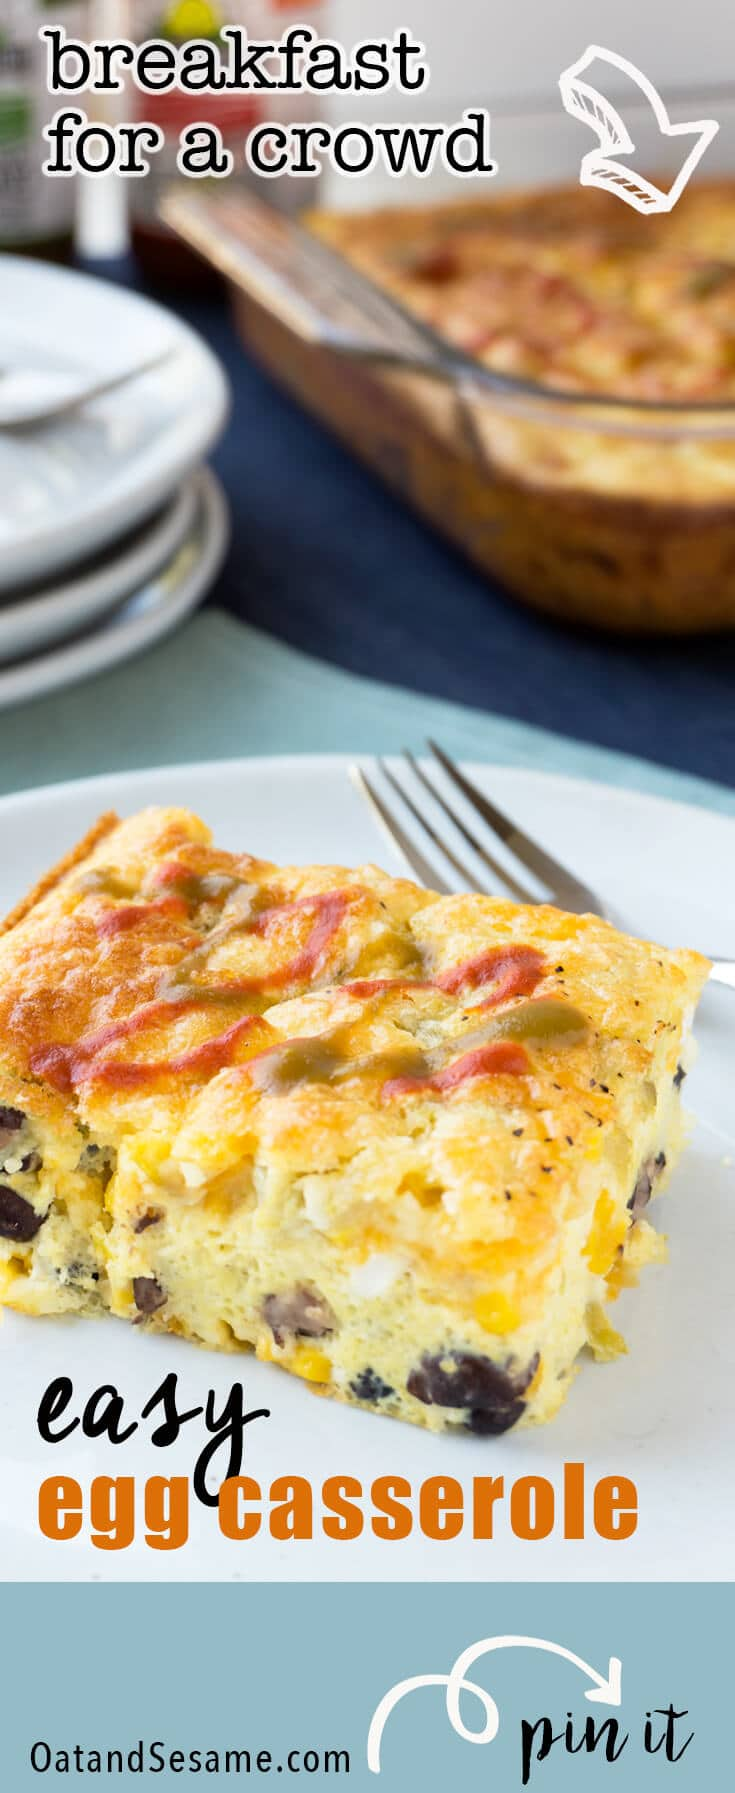 Strata, breakfast casserole, savoury french toast bake or bread pudding. It doesn't matter what you call this, it's totally delish and can be made ahead so it's great for feeding a crowd!